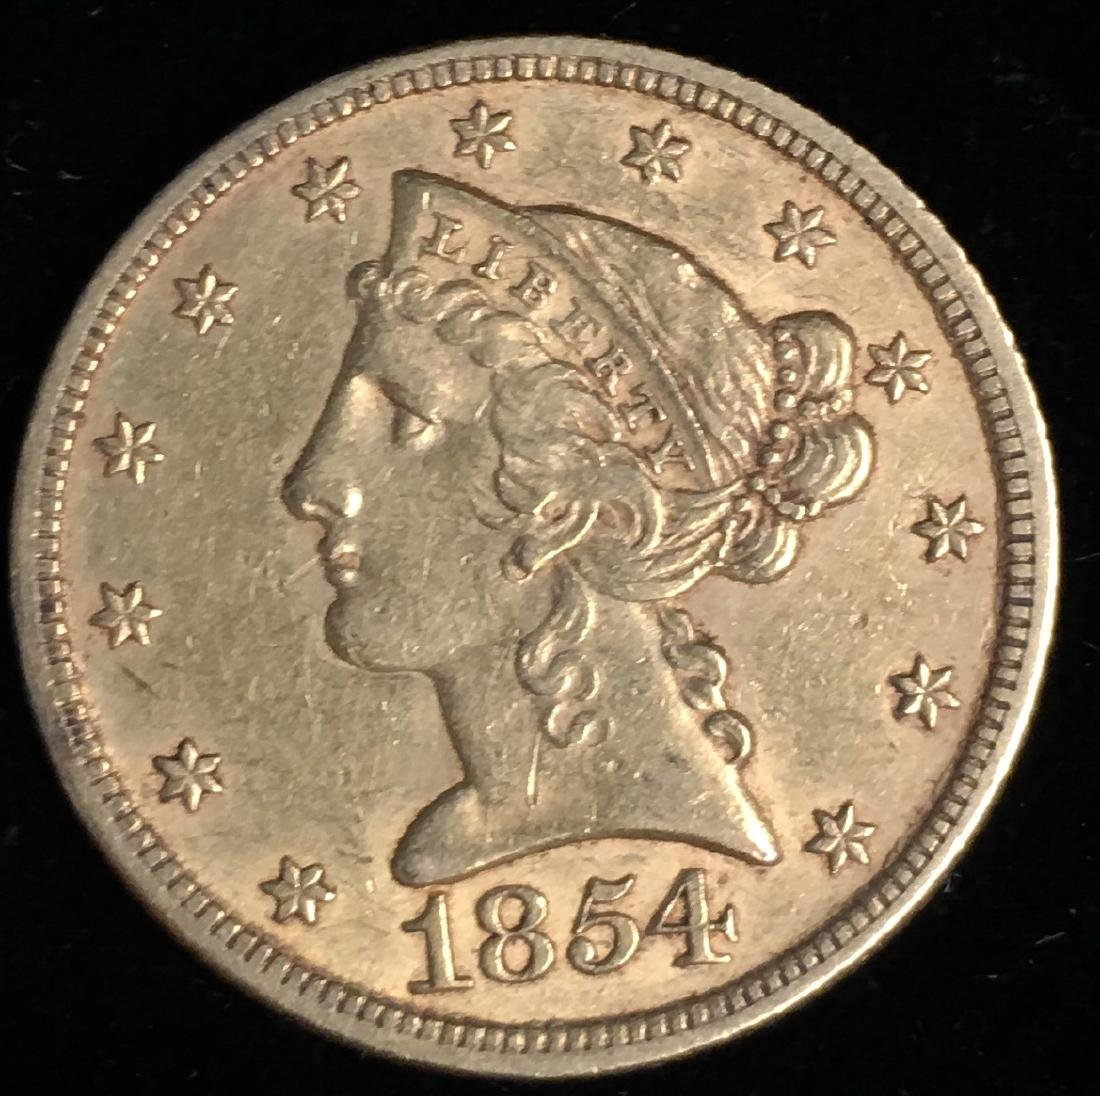 1854-P $5 Liberty Gold Five Dollars